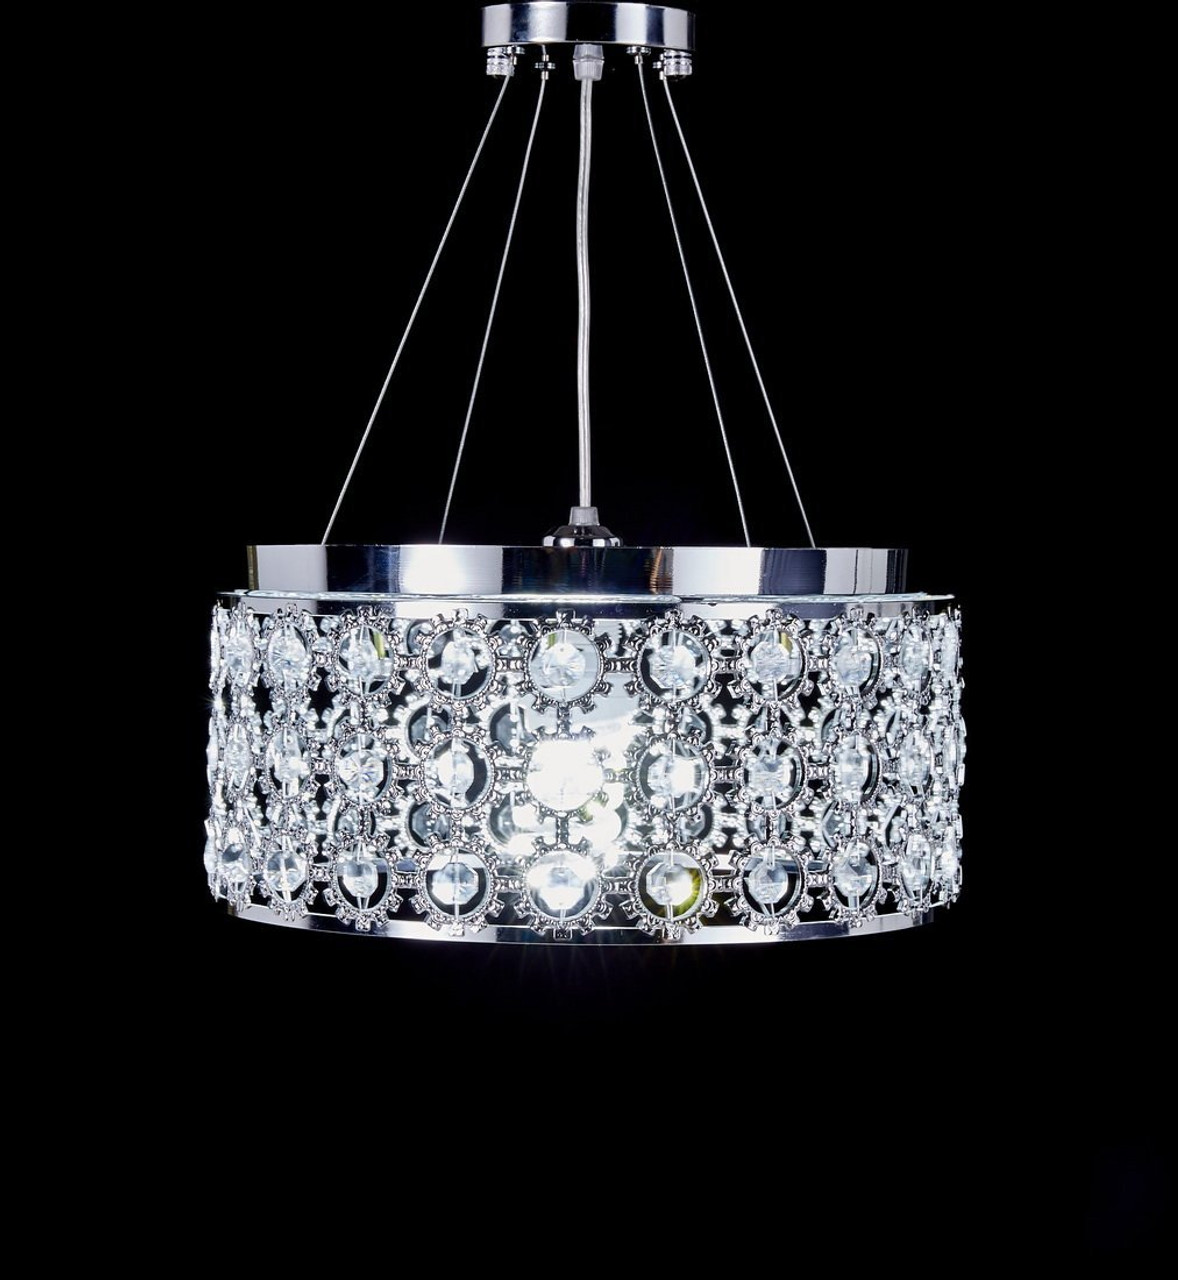 from and willlustr led pay stair pendant in lights cost special link to suspension double the chandeliers lamp crystal bulb pcs clients for item chandelier staircase light fee germany shipping spiral